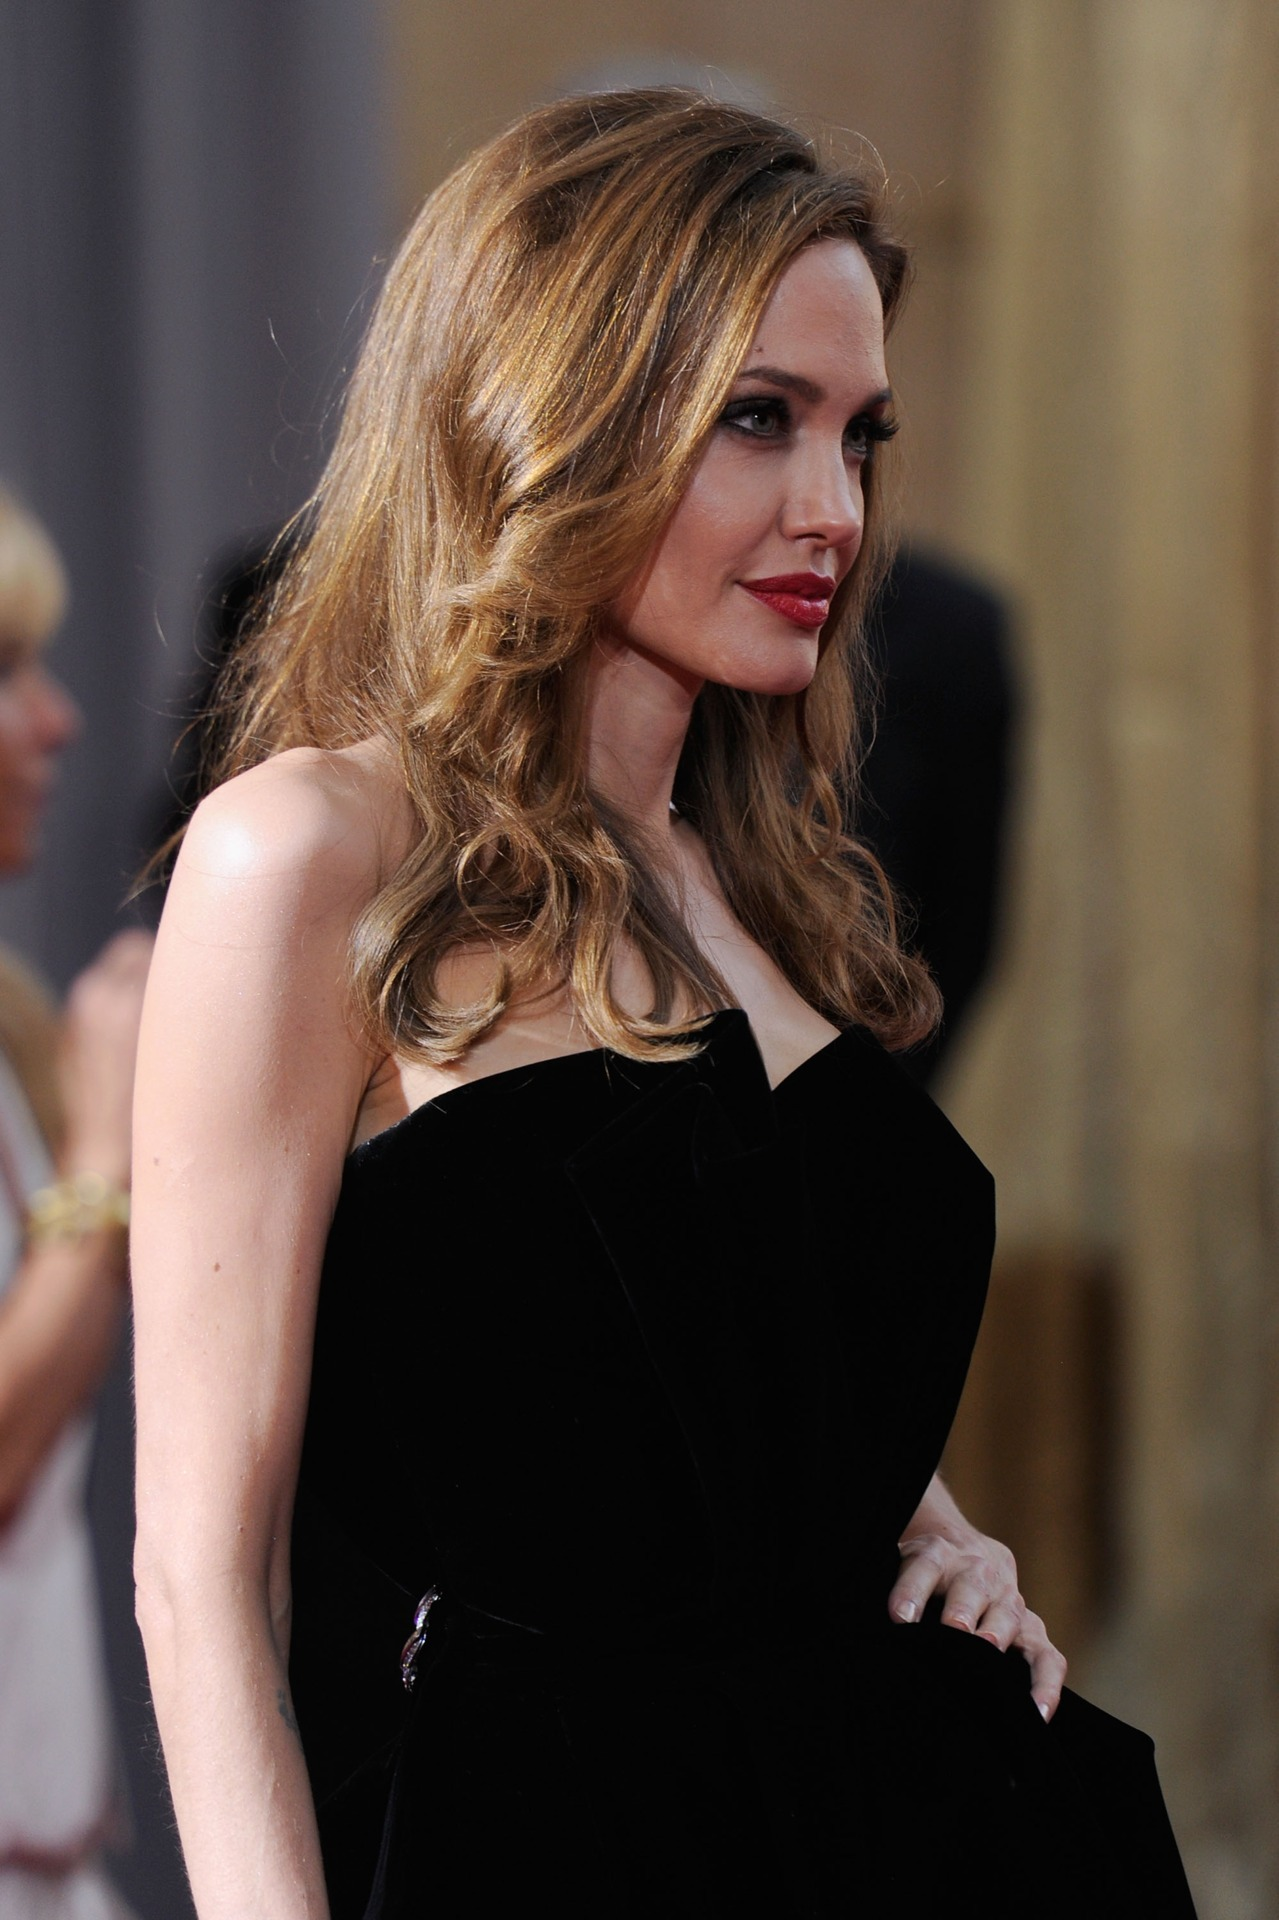 Angelina Jolie at the 2012 Oscars, February 26th Stunning, definitely one of my favorites from the night.